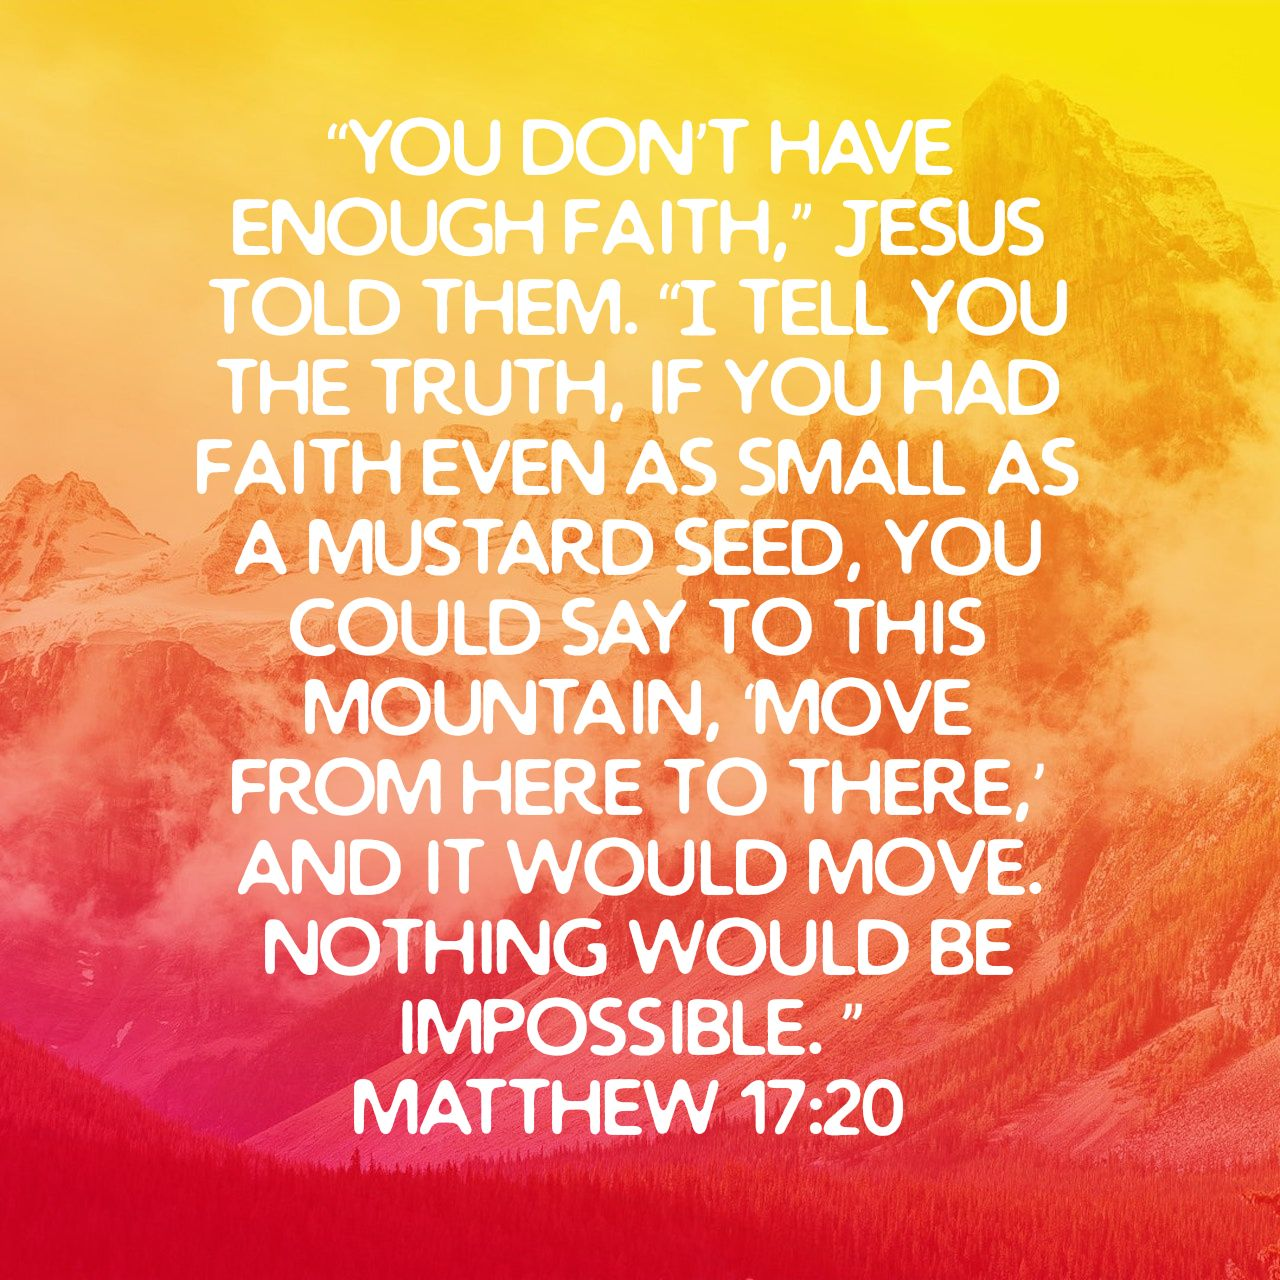 """You don't have enough faith,"" Jesus told them. ""I tell you the truth, if you had faith even as small as a mustard seed, you could say to this mountain, 'Move from here to there,' and it would move. Nothing would be impossible. ""  - Matthew 17:20 NLT"